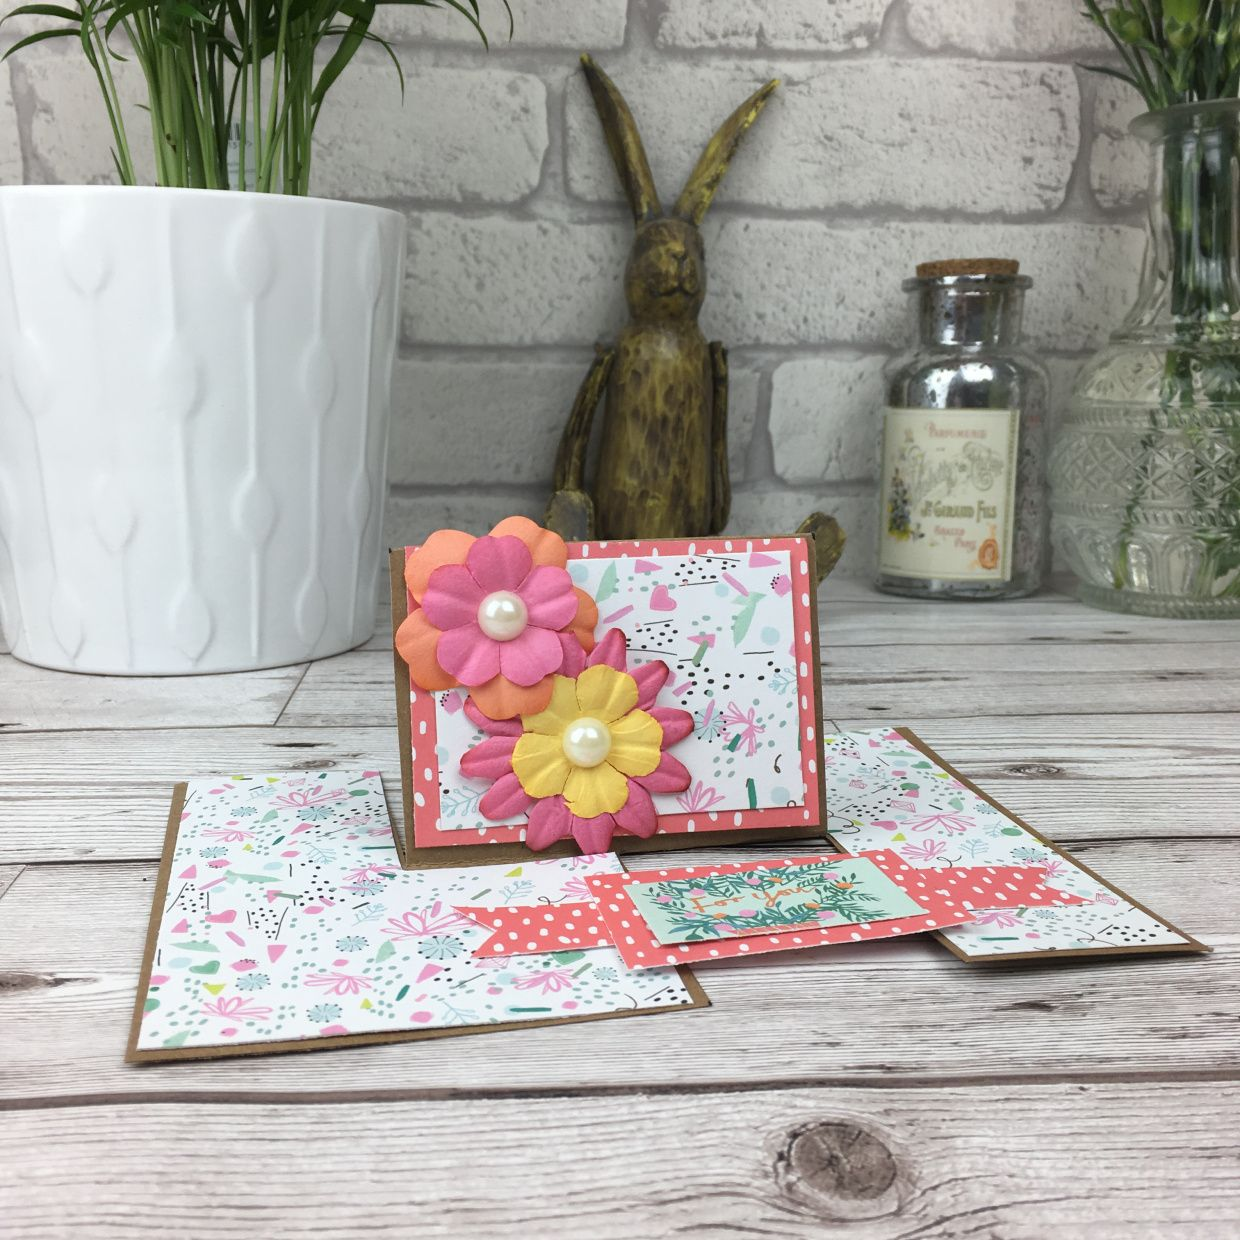 How To Make An Impossible Card Original Tutorial I Heart Maggie